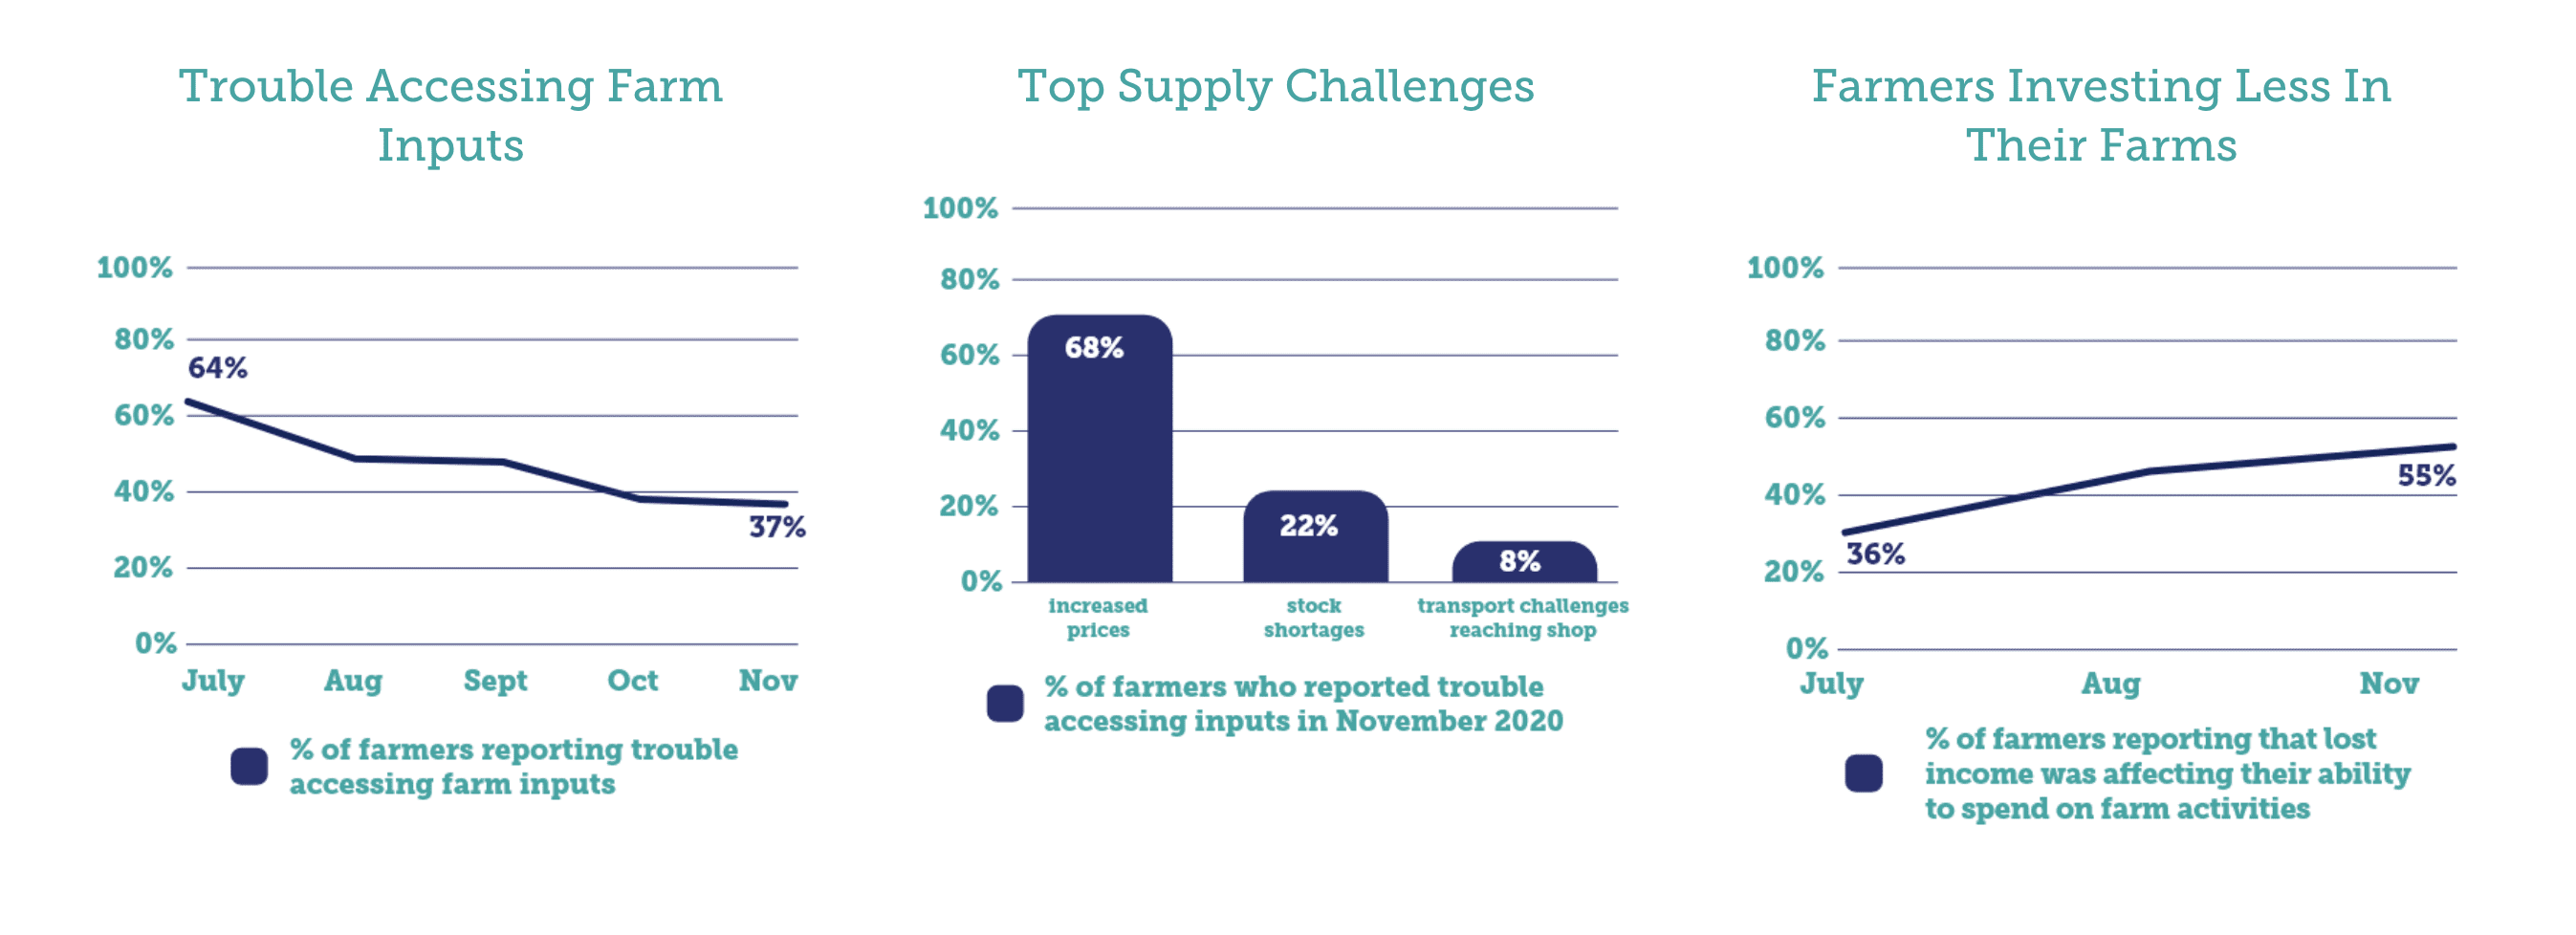 Charts show top supply challenges in commercial agriculture last year.